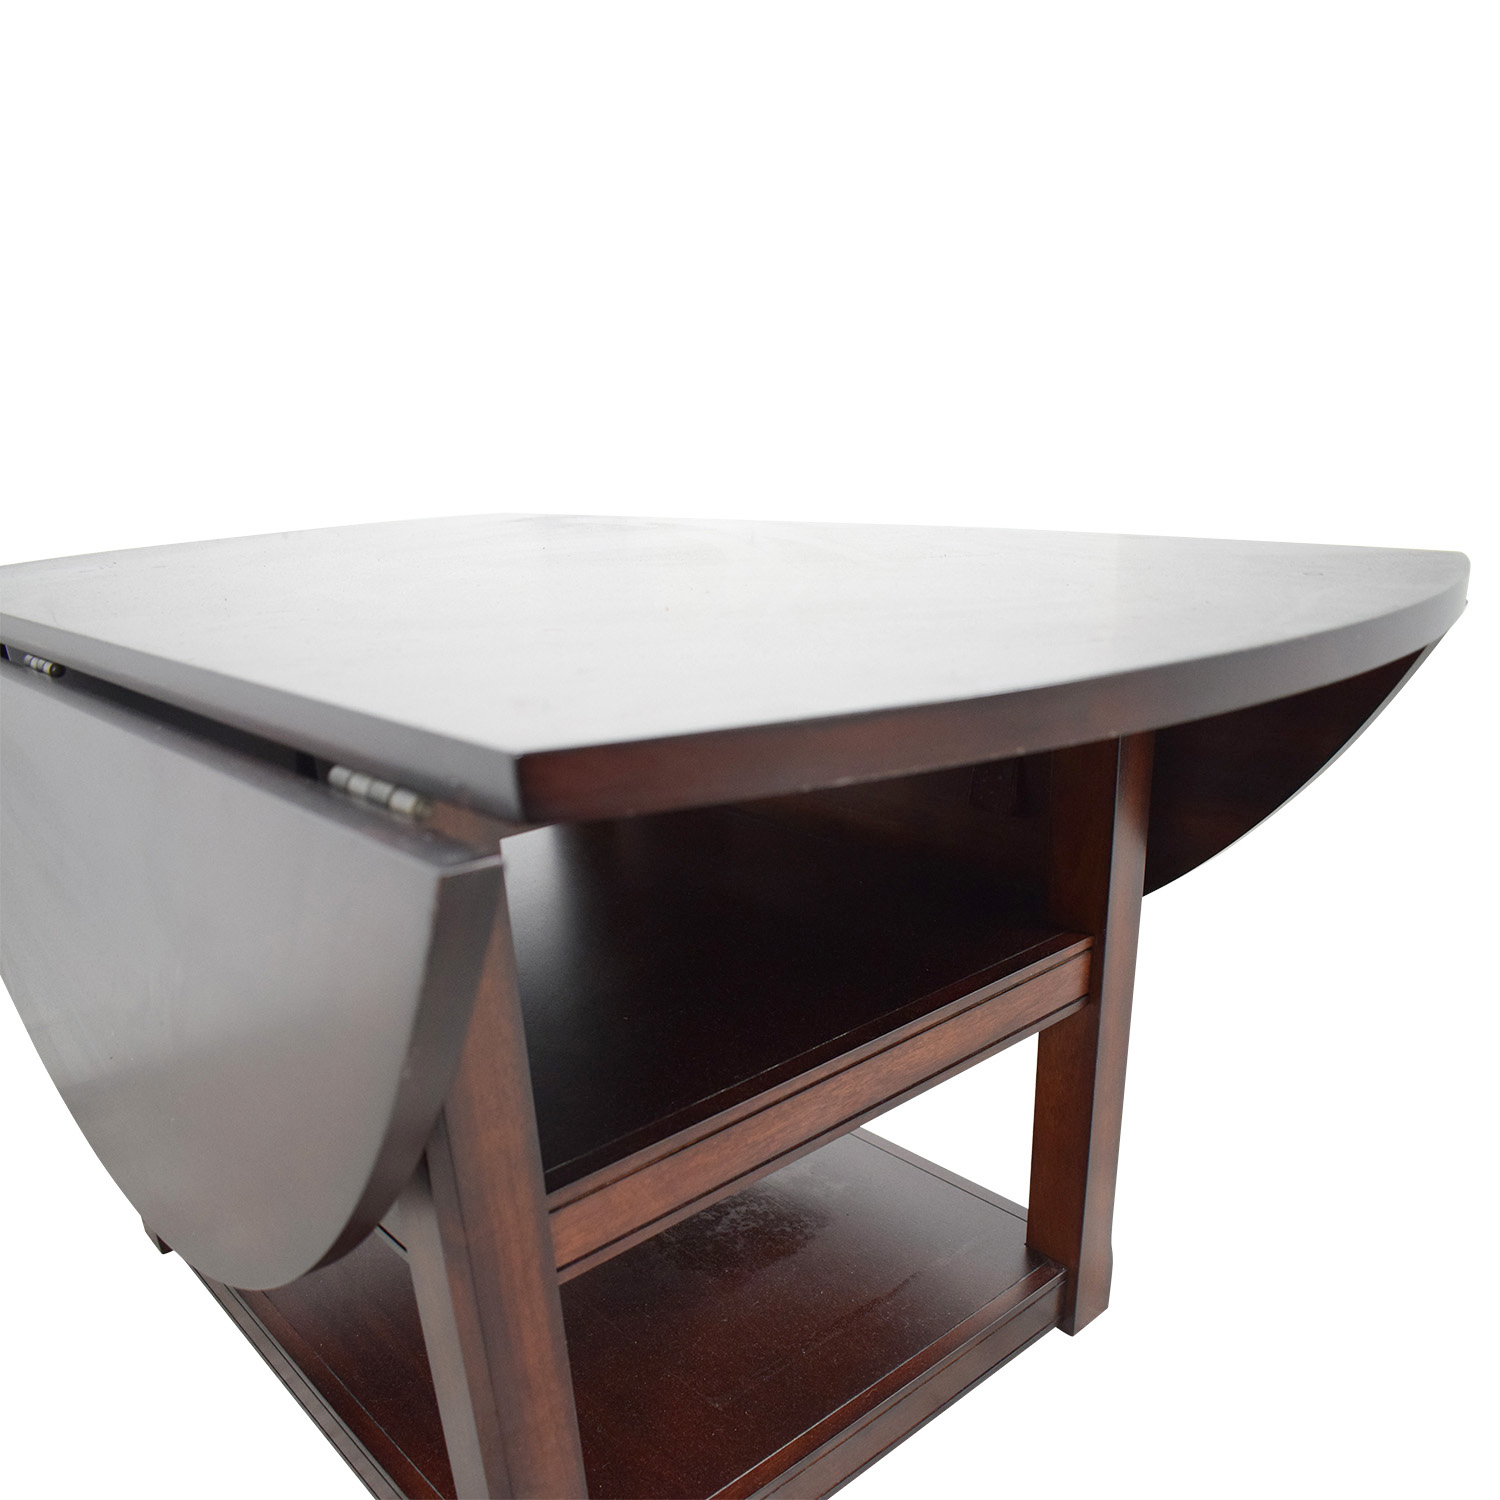 44% Off – Pottery Barn Pottery Barn Shayne Drop Leaf Kitchen Table / Tables Pertaining To Most Popular Black Shayne Drop Leaf Kitchen Tables (View 17 of 25)